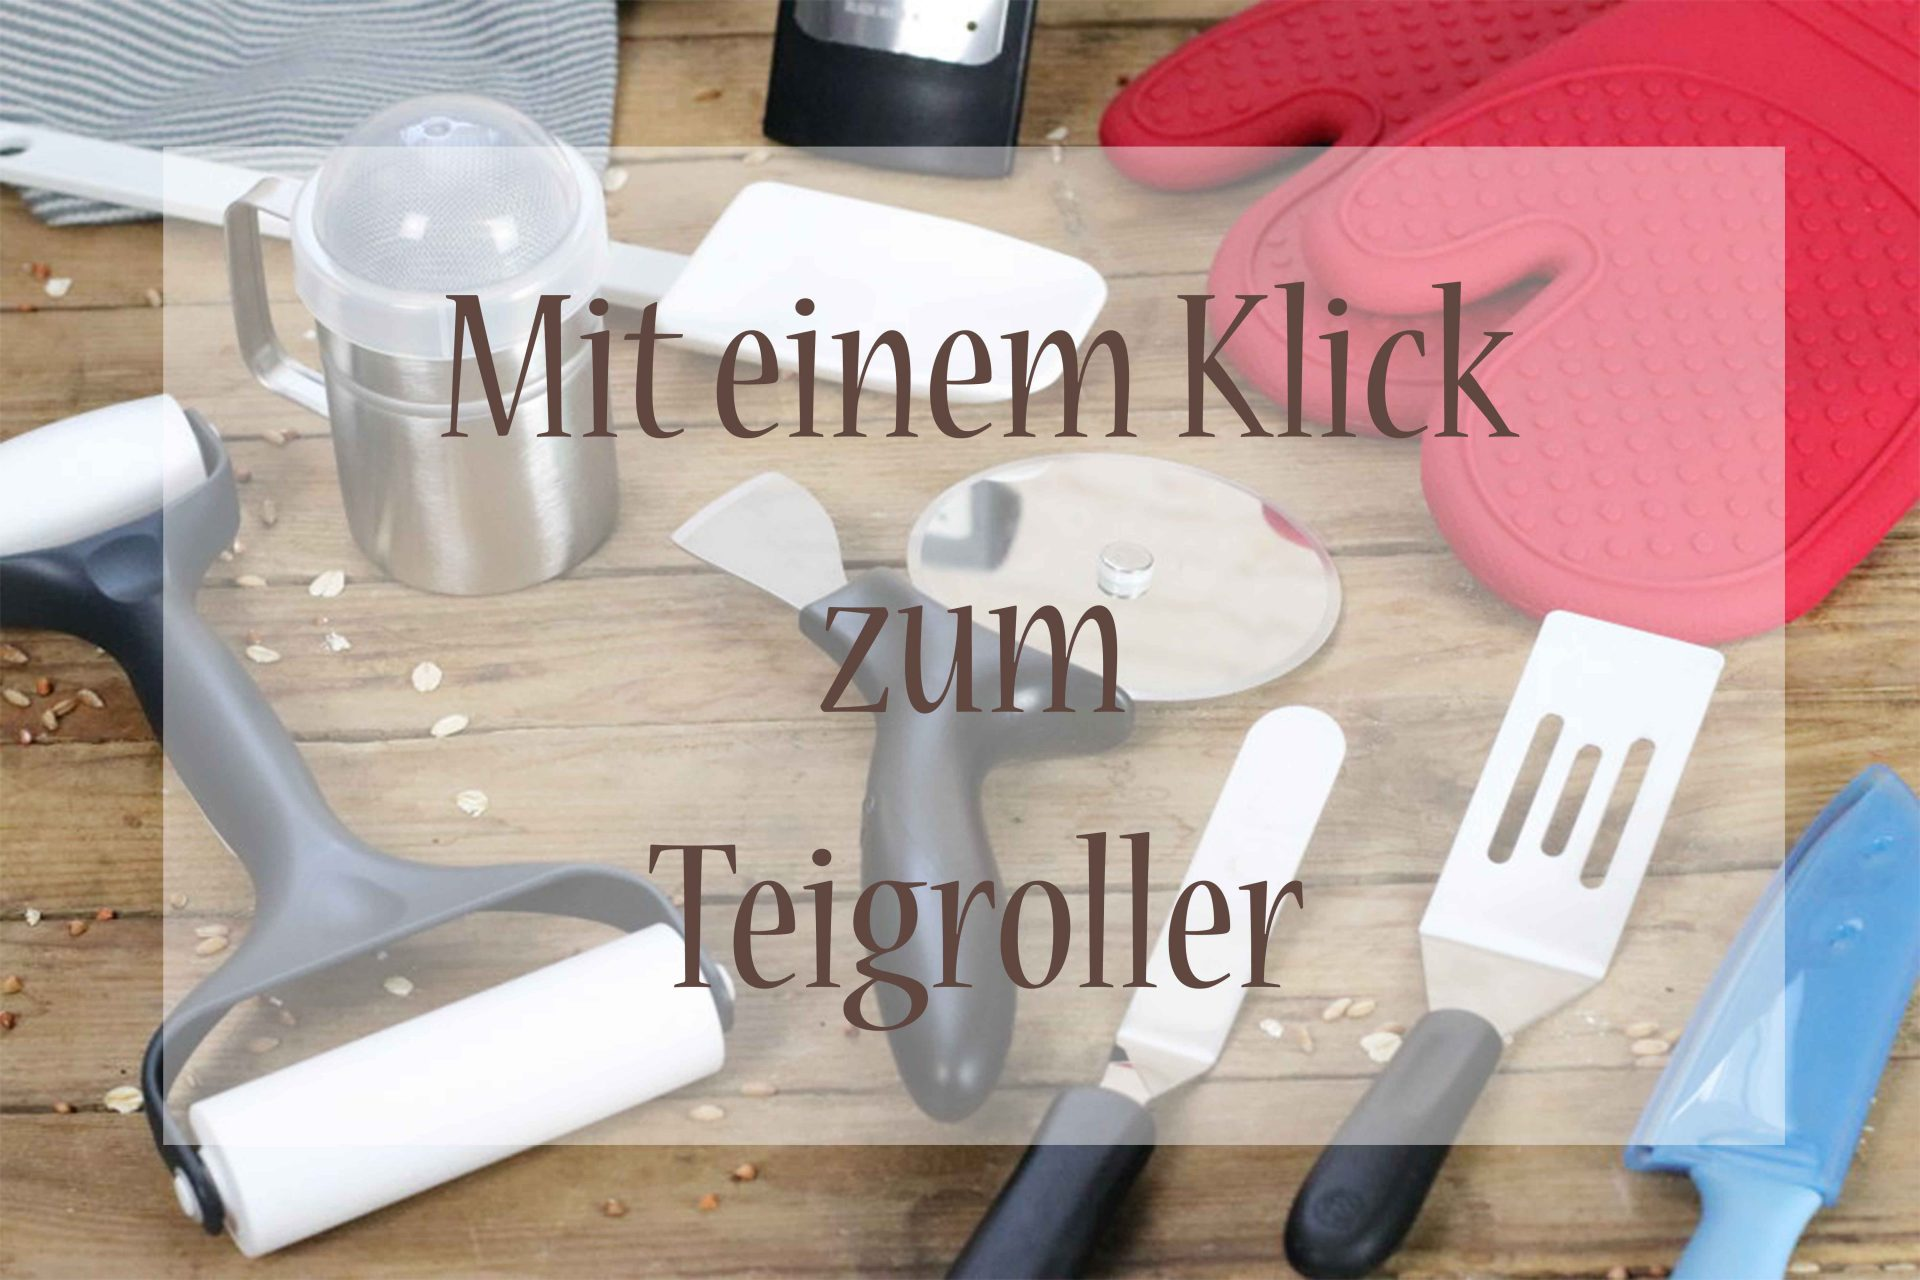 Teigroller kaufen Pampered Chef Foodrevers Clean Eating